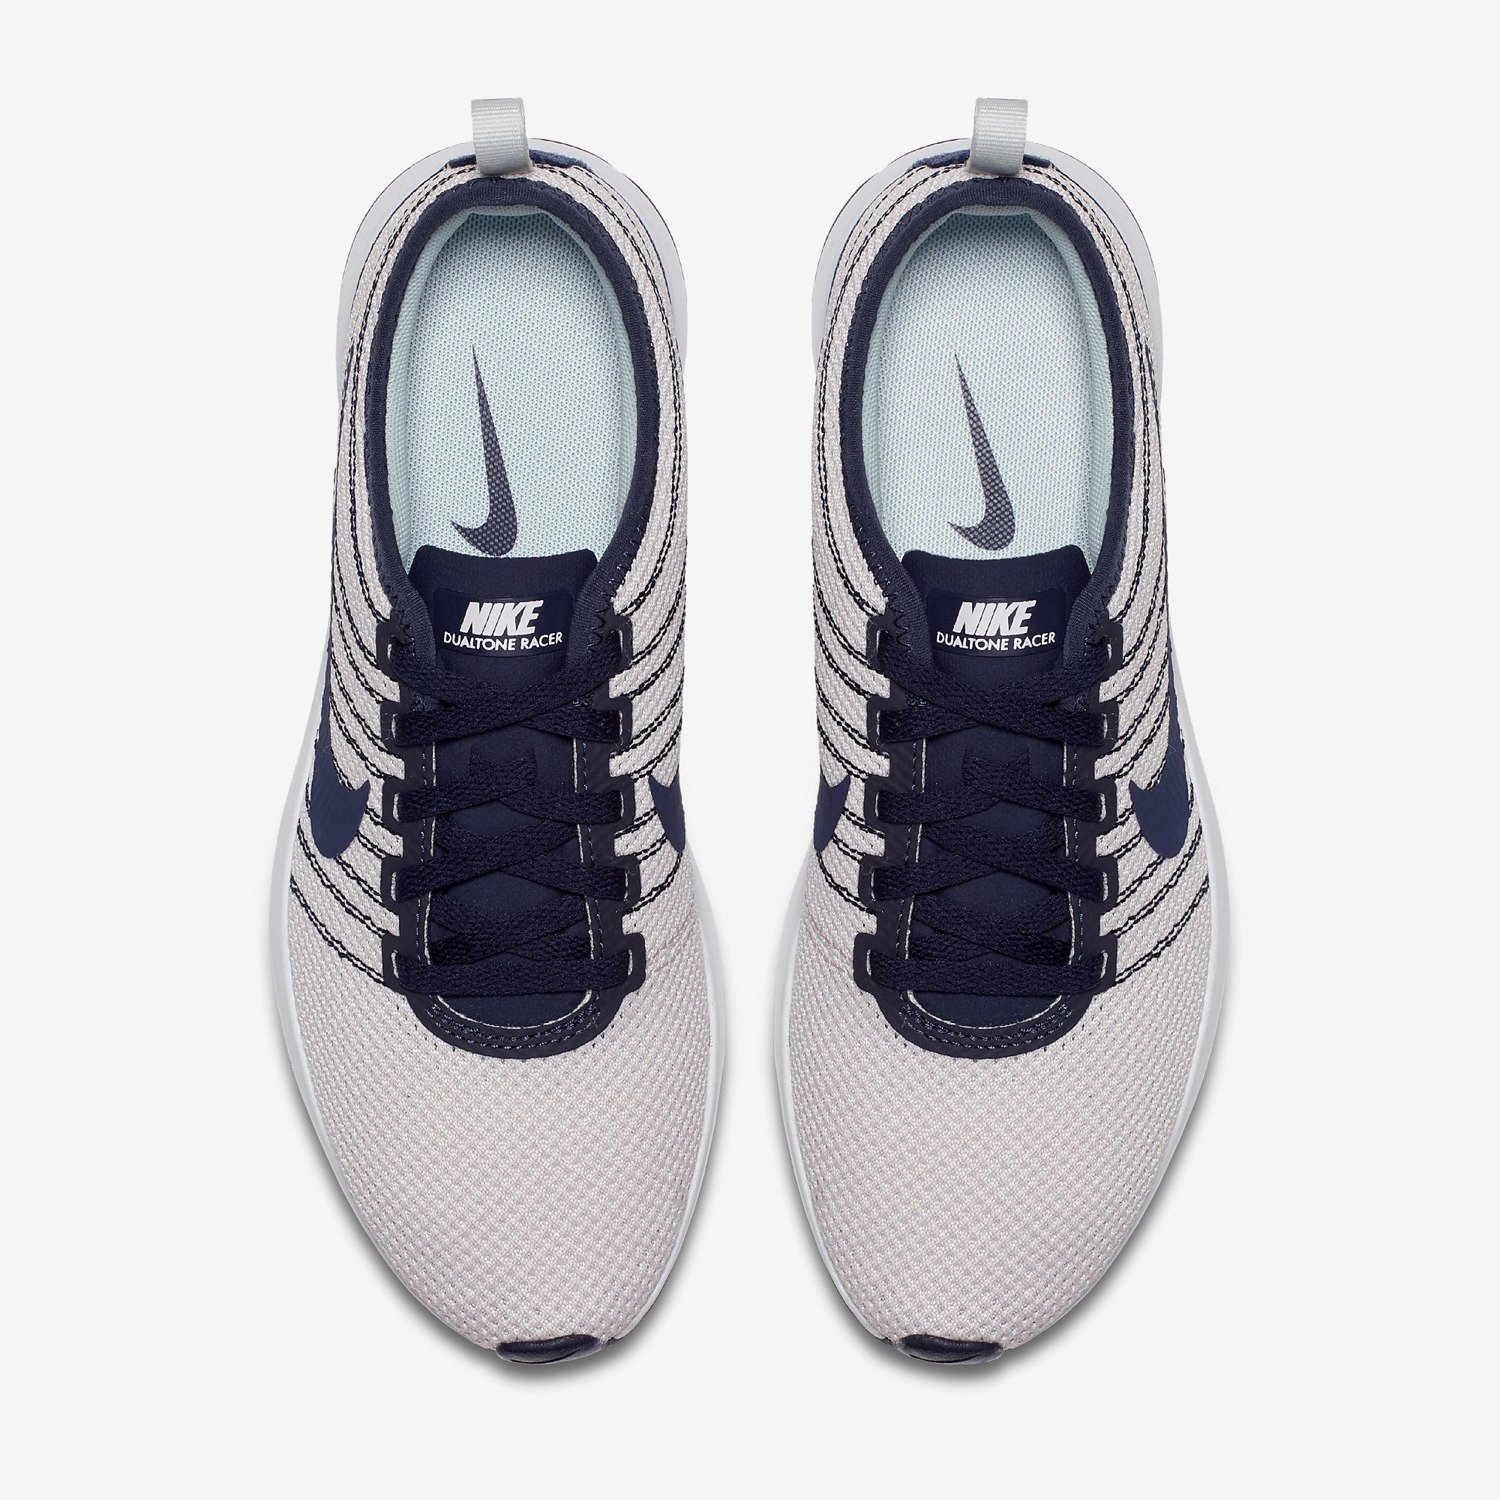 ... Women's shoes Nike Dualtone Racer Light Bone 917682 010 ...